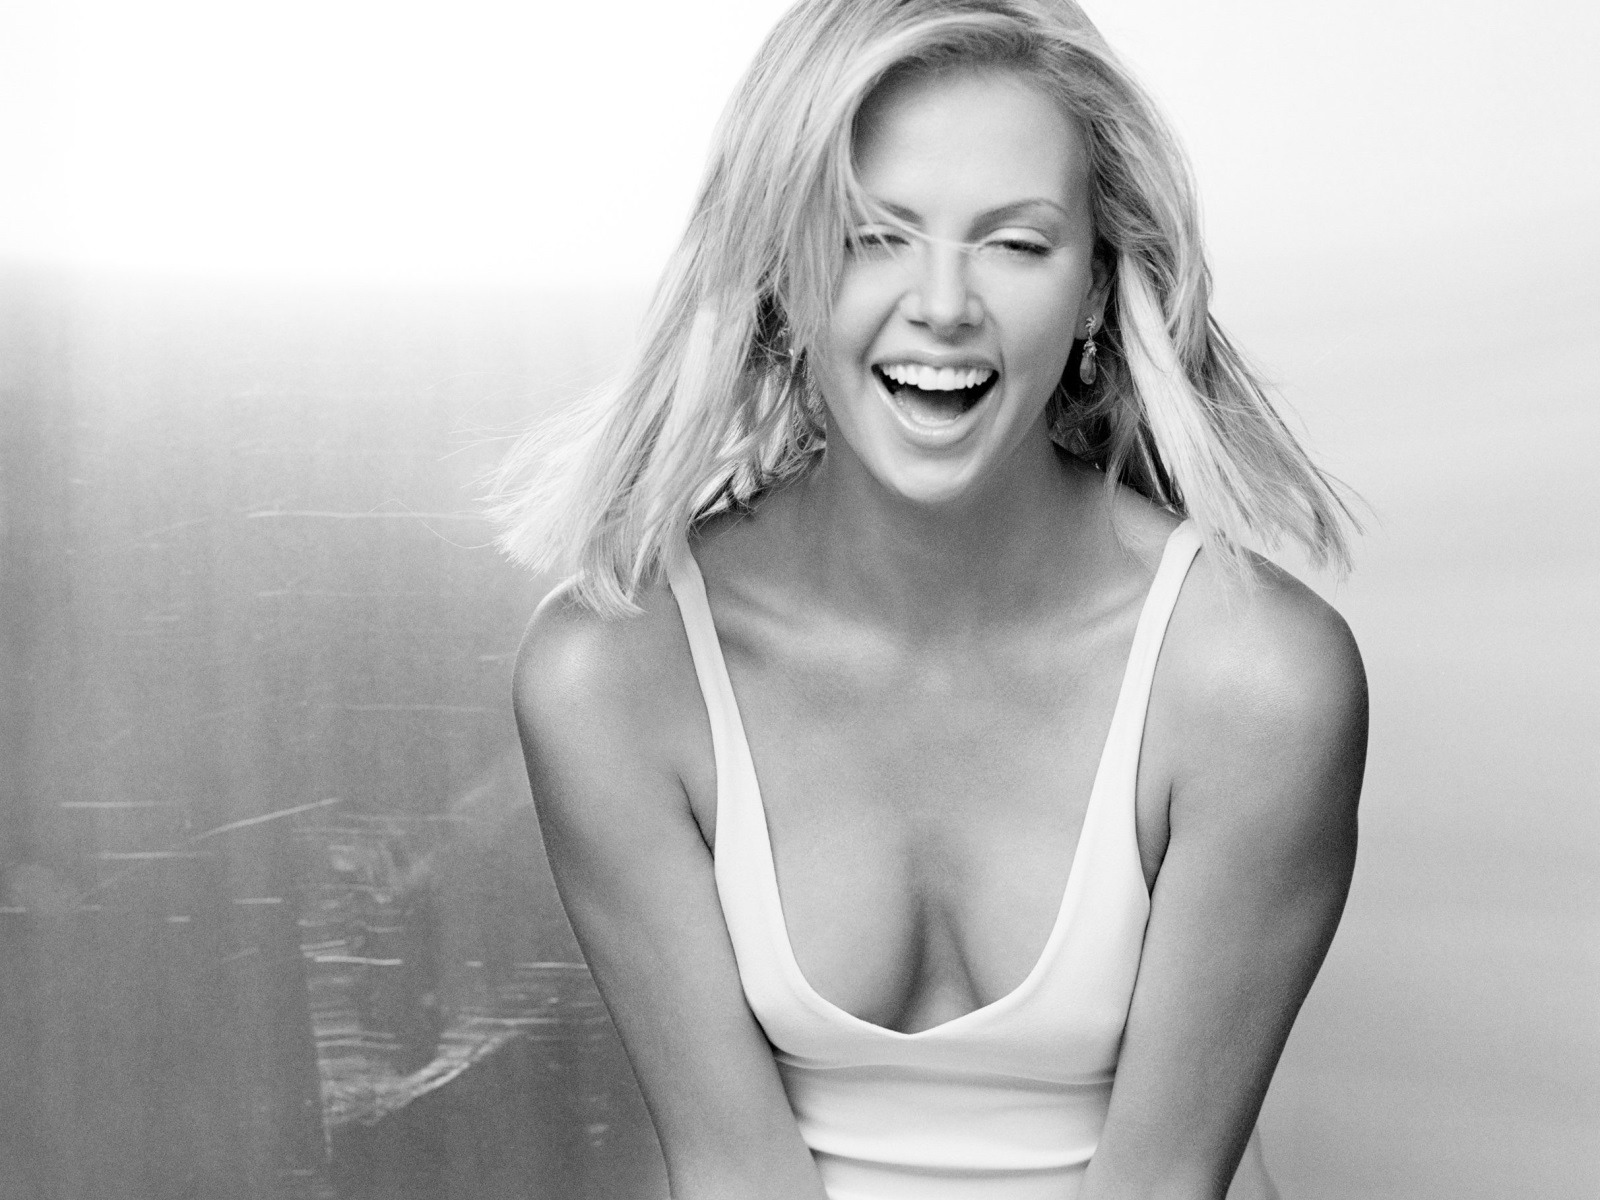 Charlize Theron Happy Wallpaper Charlize Theron Female